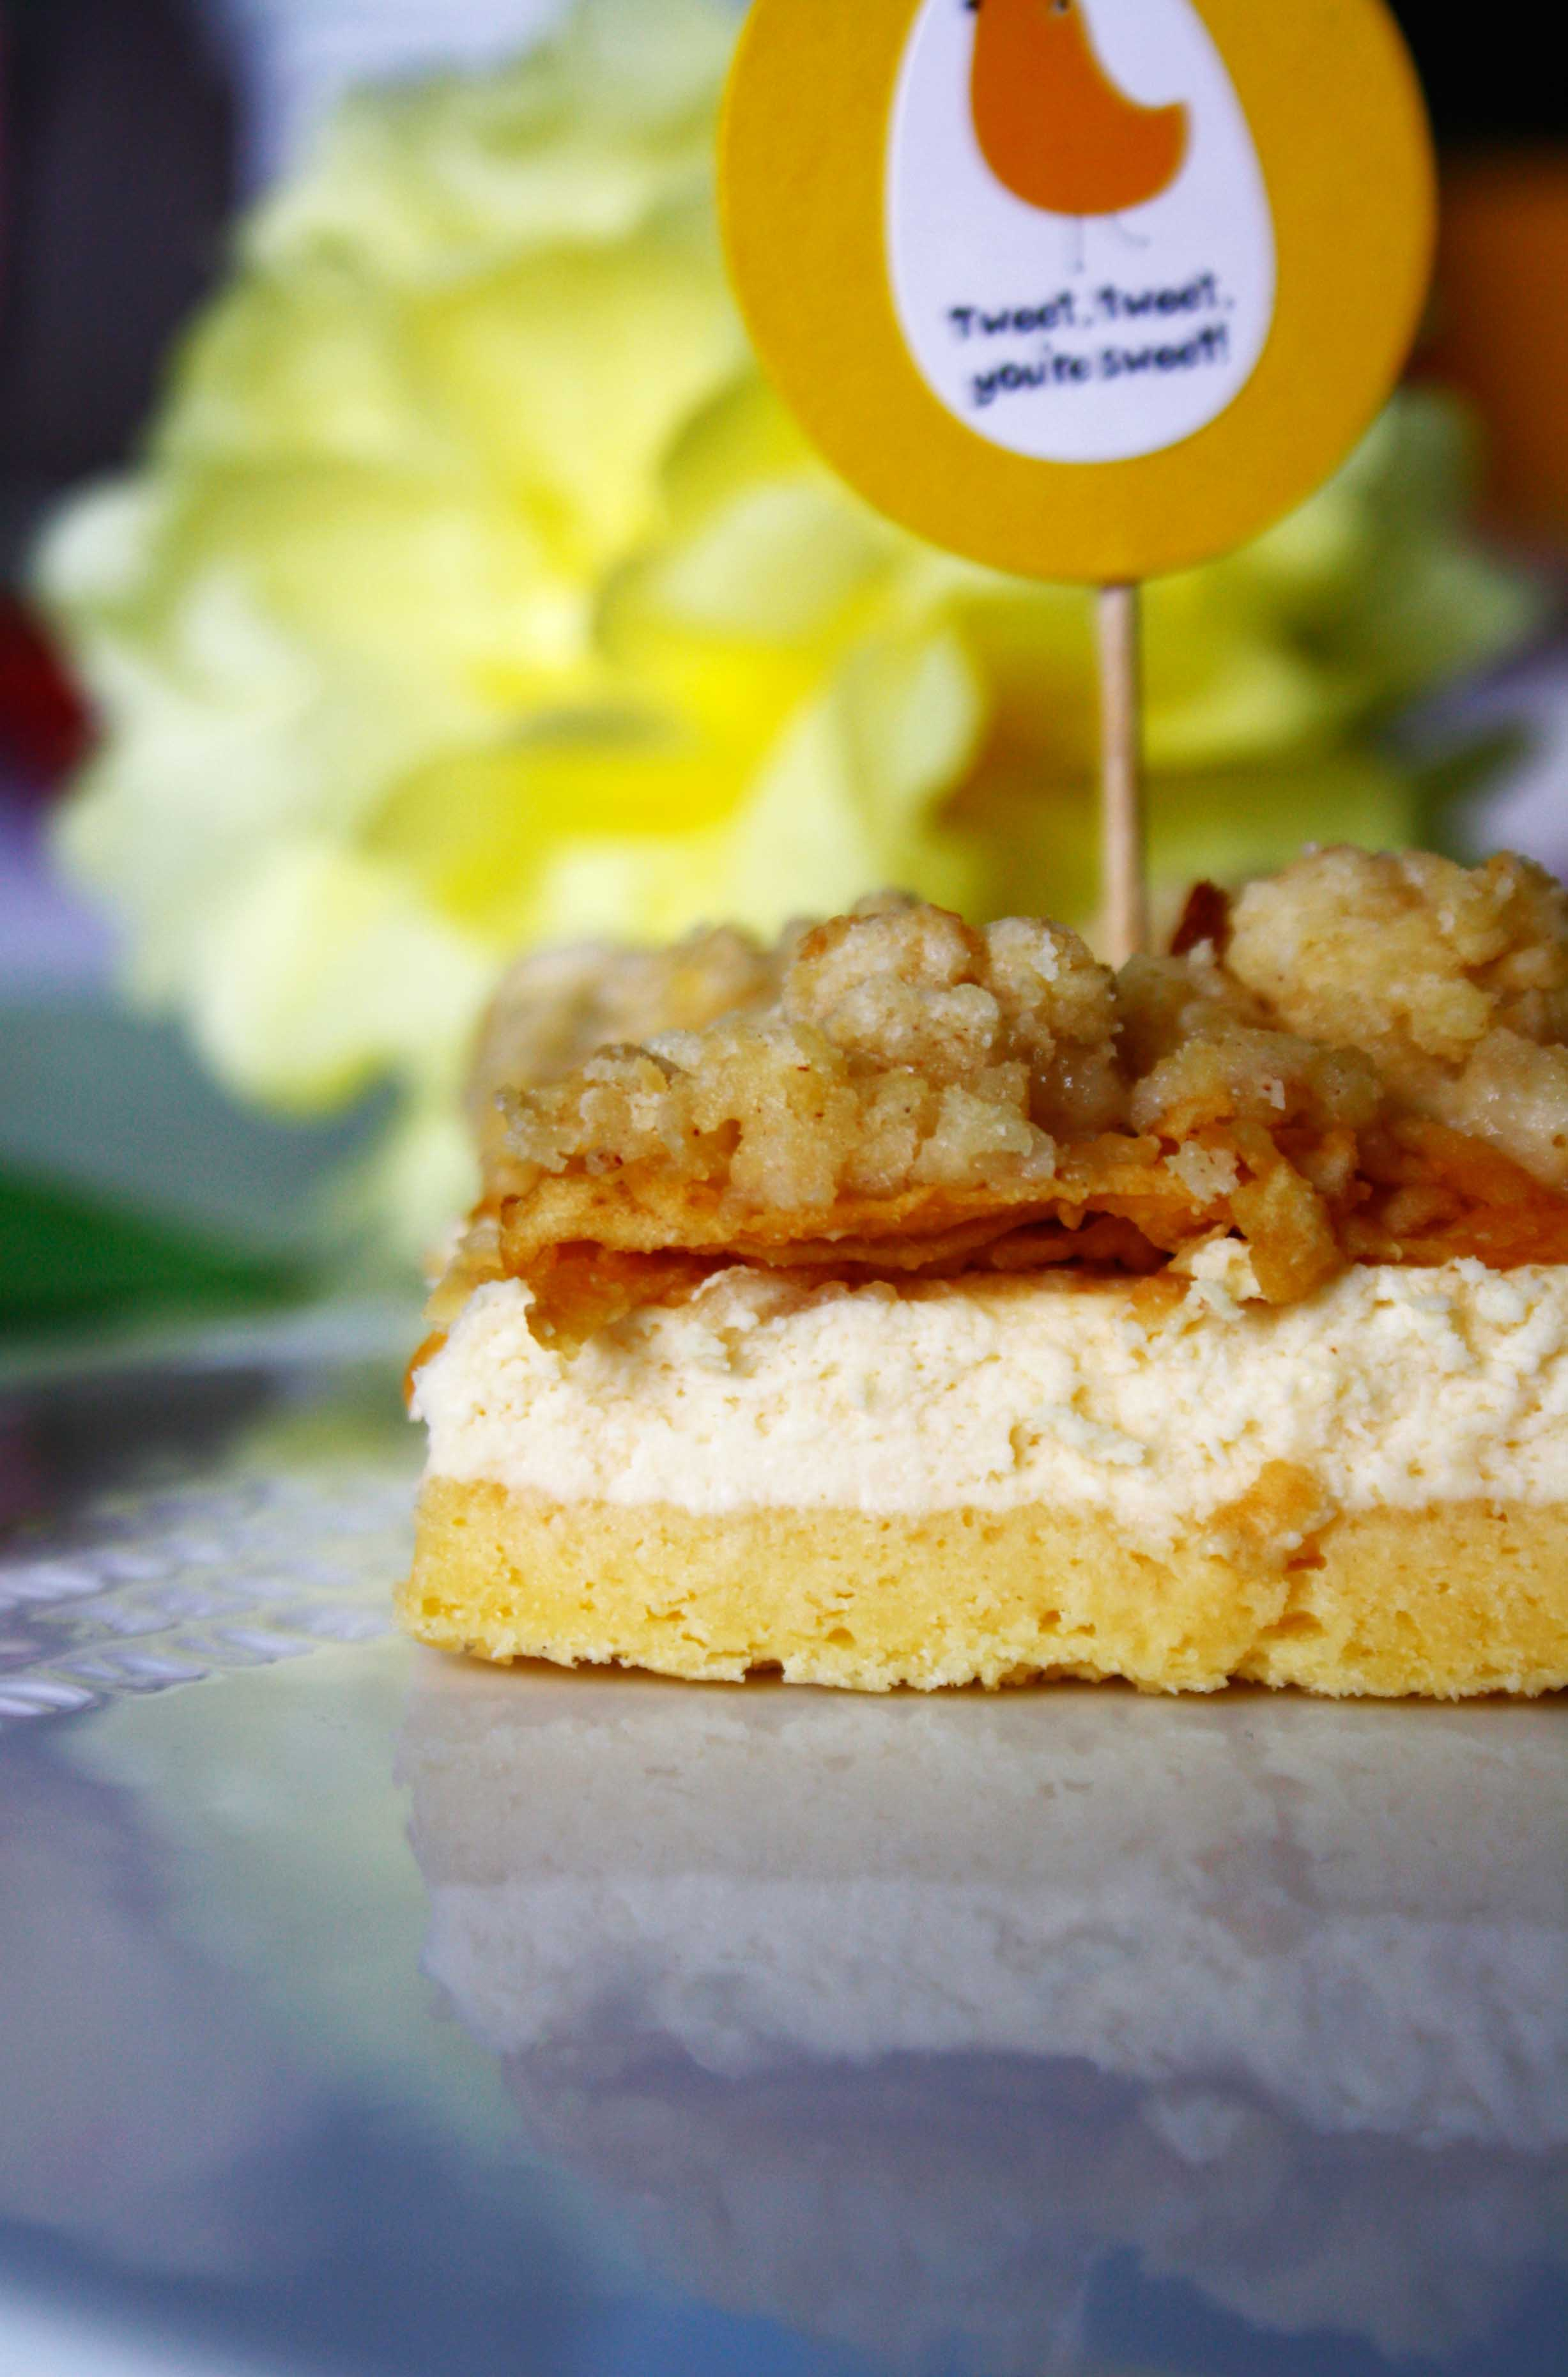 Apfel Streusel Käse Kuchen // Crumble Cheesecake with apple